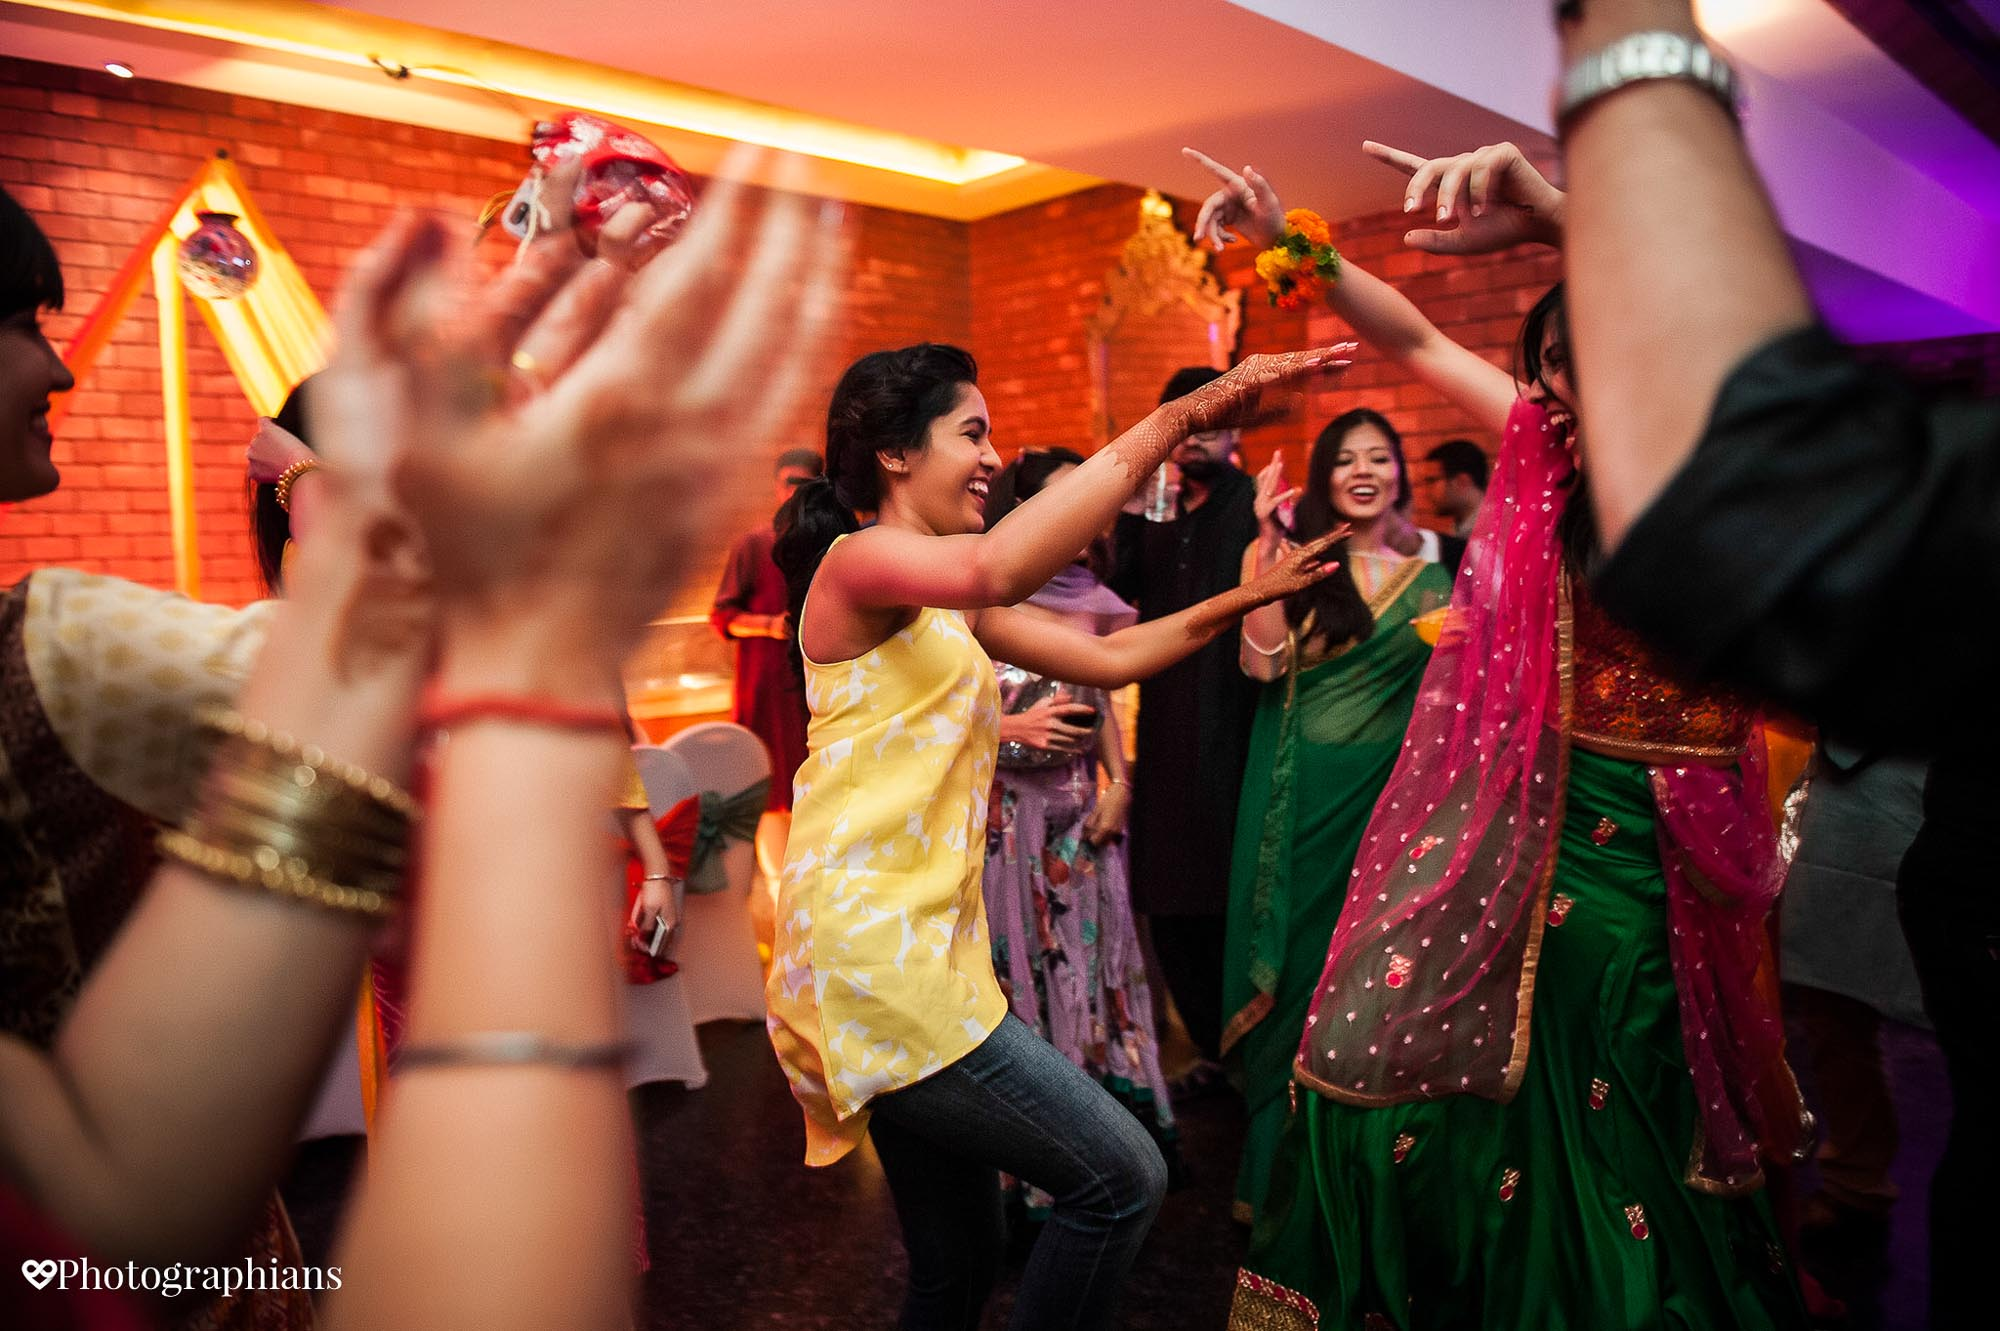 Punjabi_Marwari_Wedding_Kolkata_Photographians_-VIDHI-4